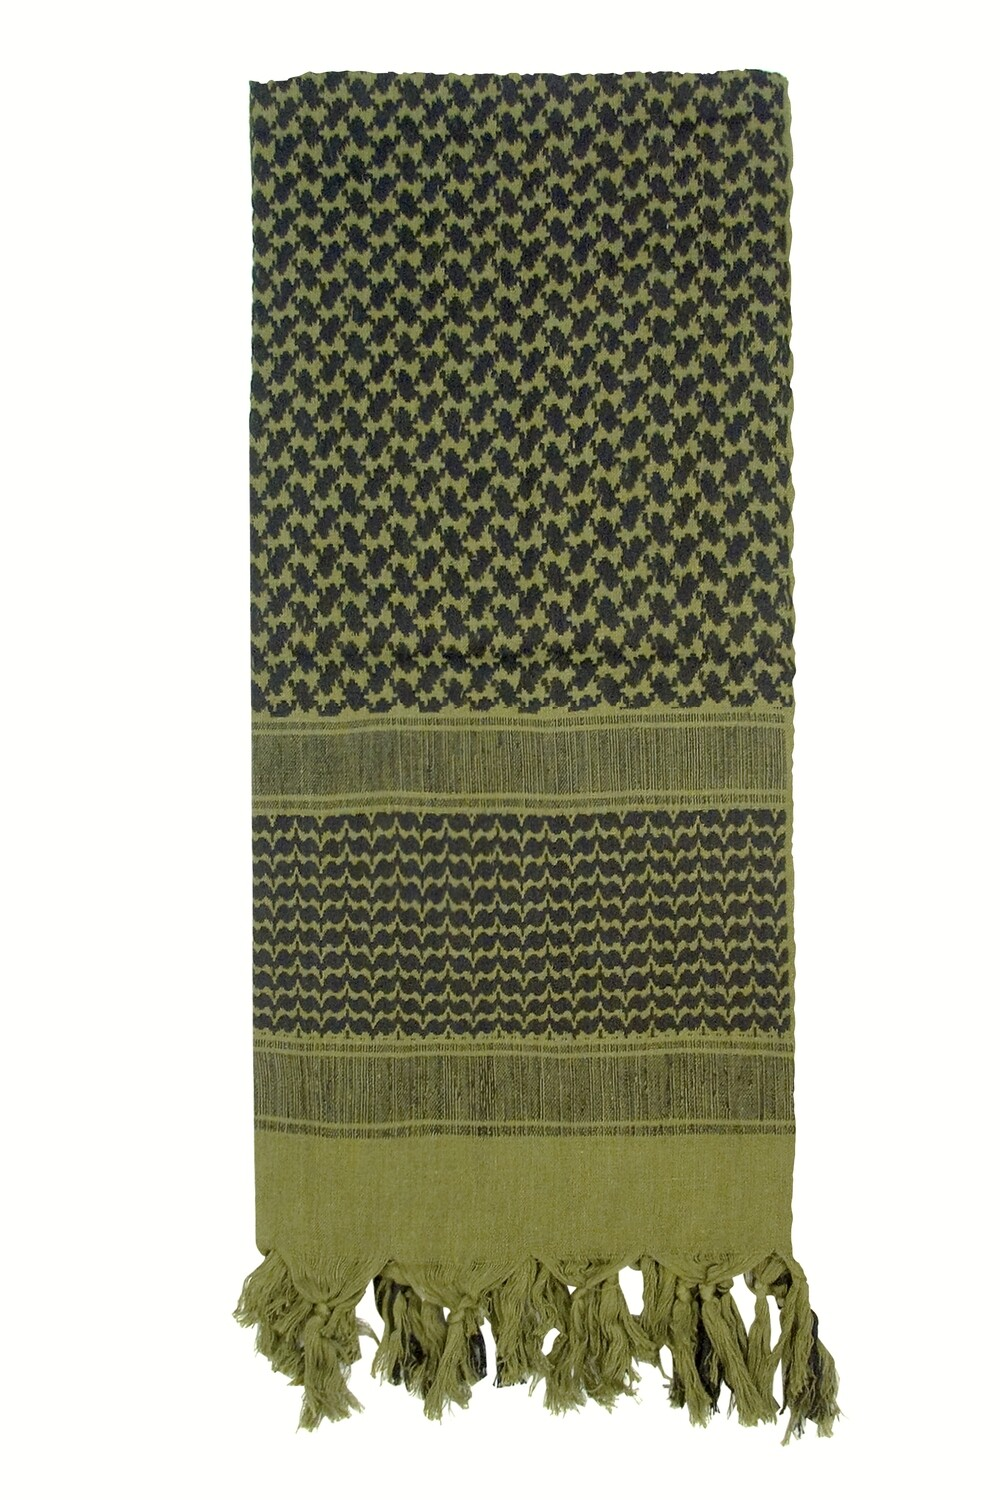 Rothco, 8537, Deluxe Shemagh Tactical Scarves